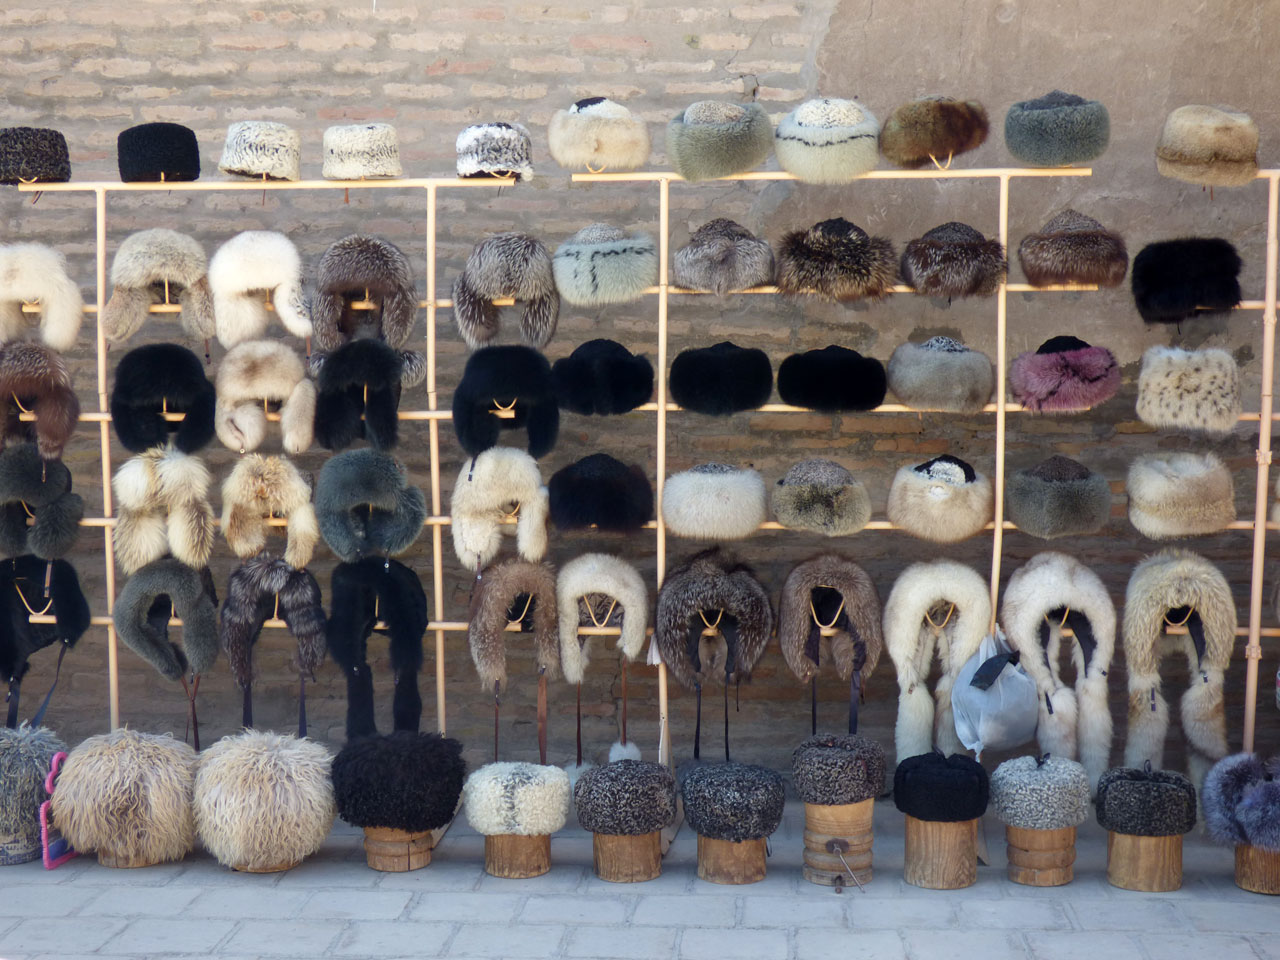 Souvenir hall selling various types of hat, Khiva